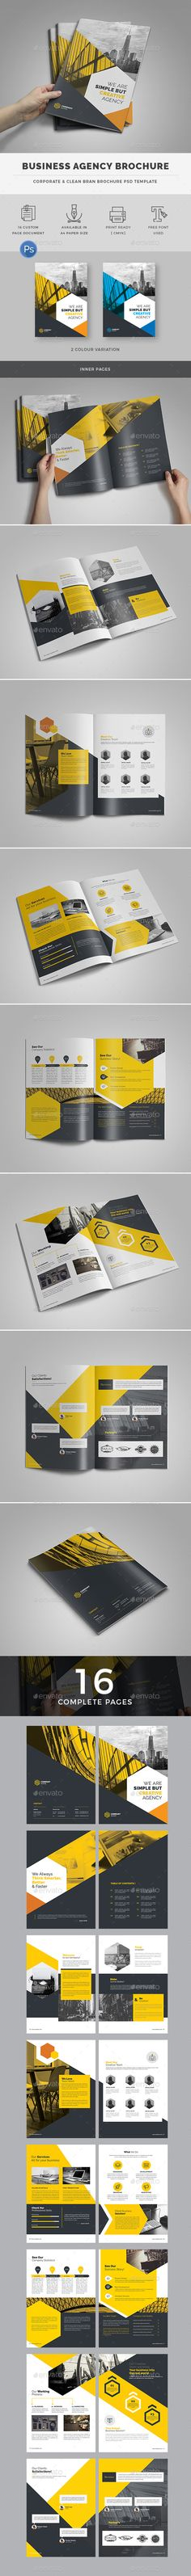 Business Agency Brochure Template — Photoshop PSD #white #graphic • Download ➝ https://graphicriver.net/item/business-agency-brochure-template/18999884?ref=pxcr